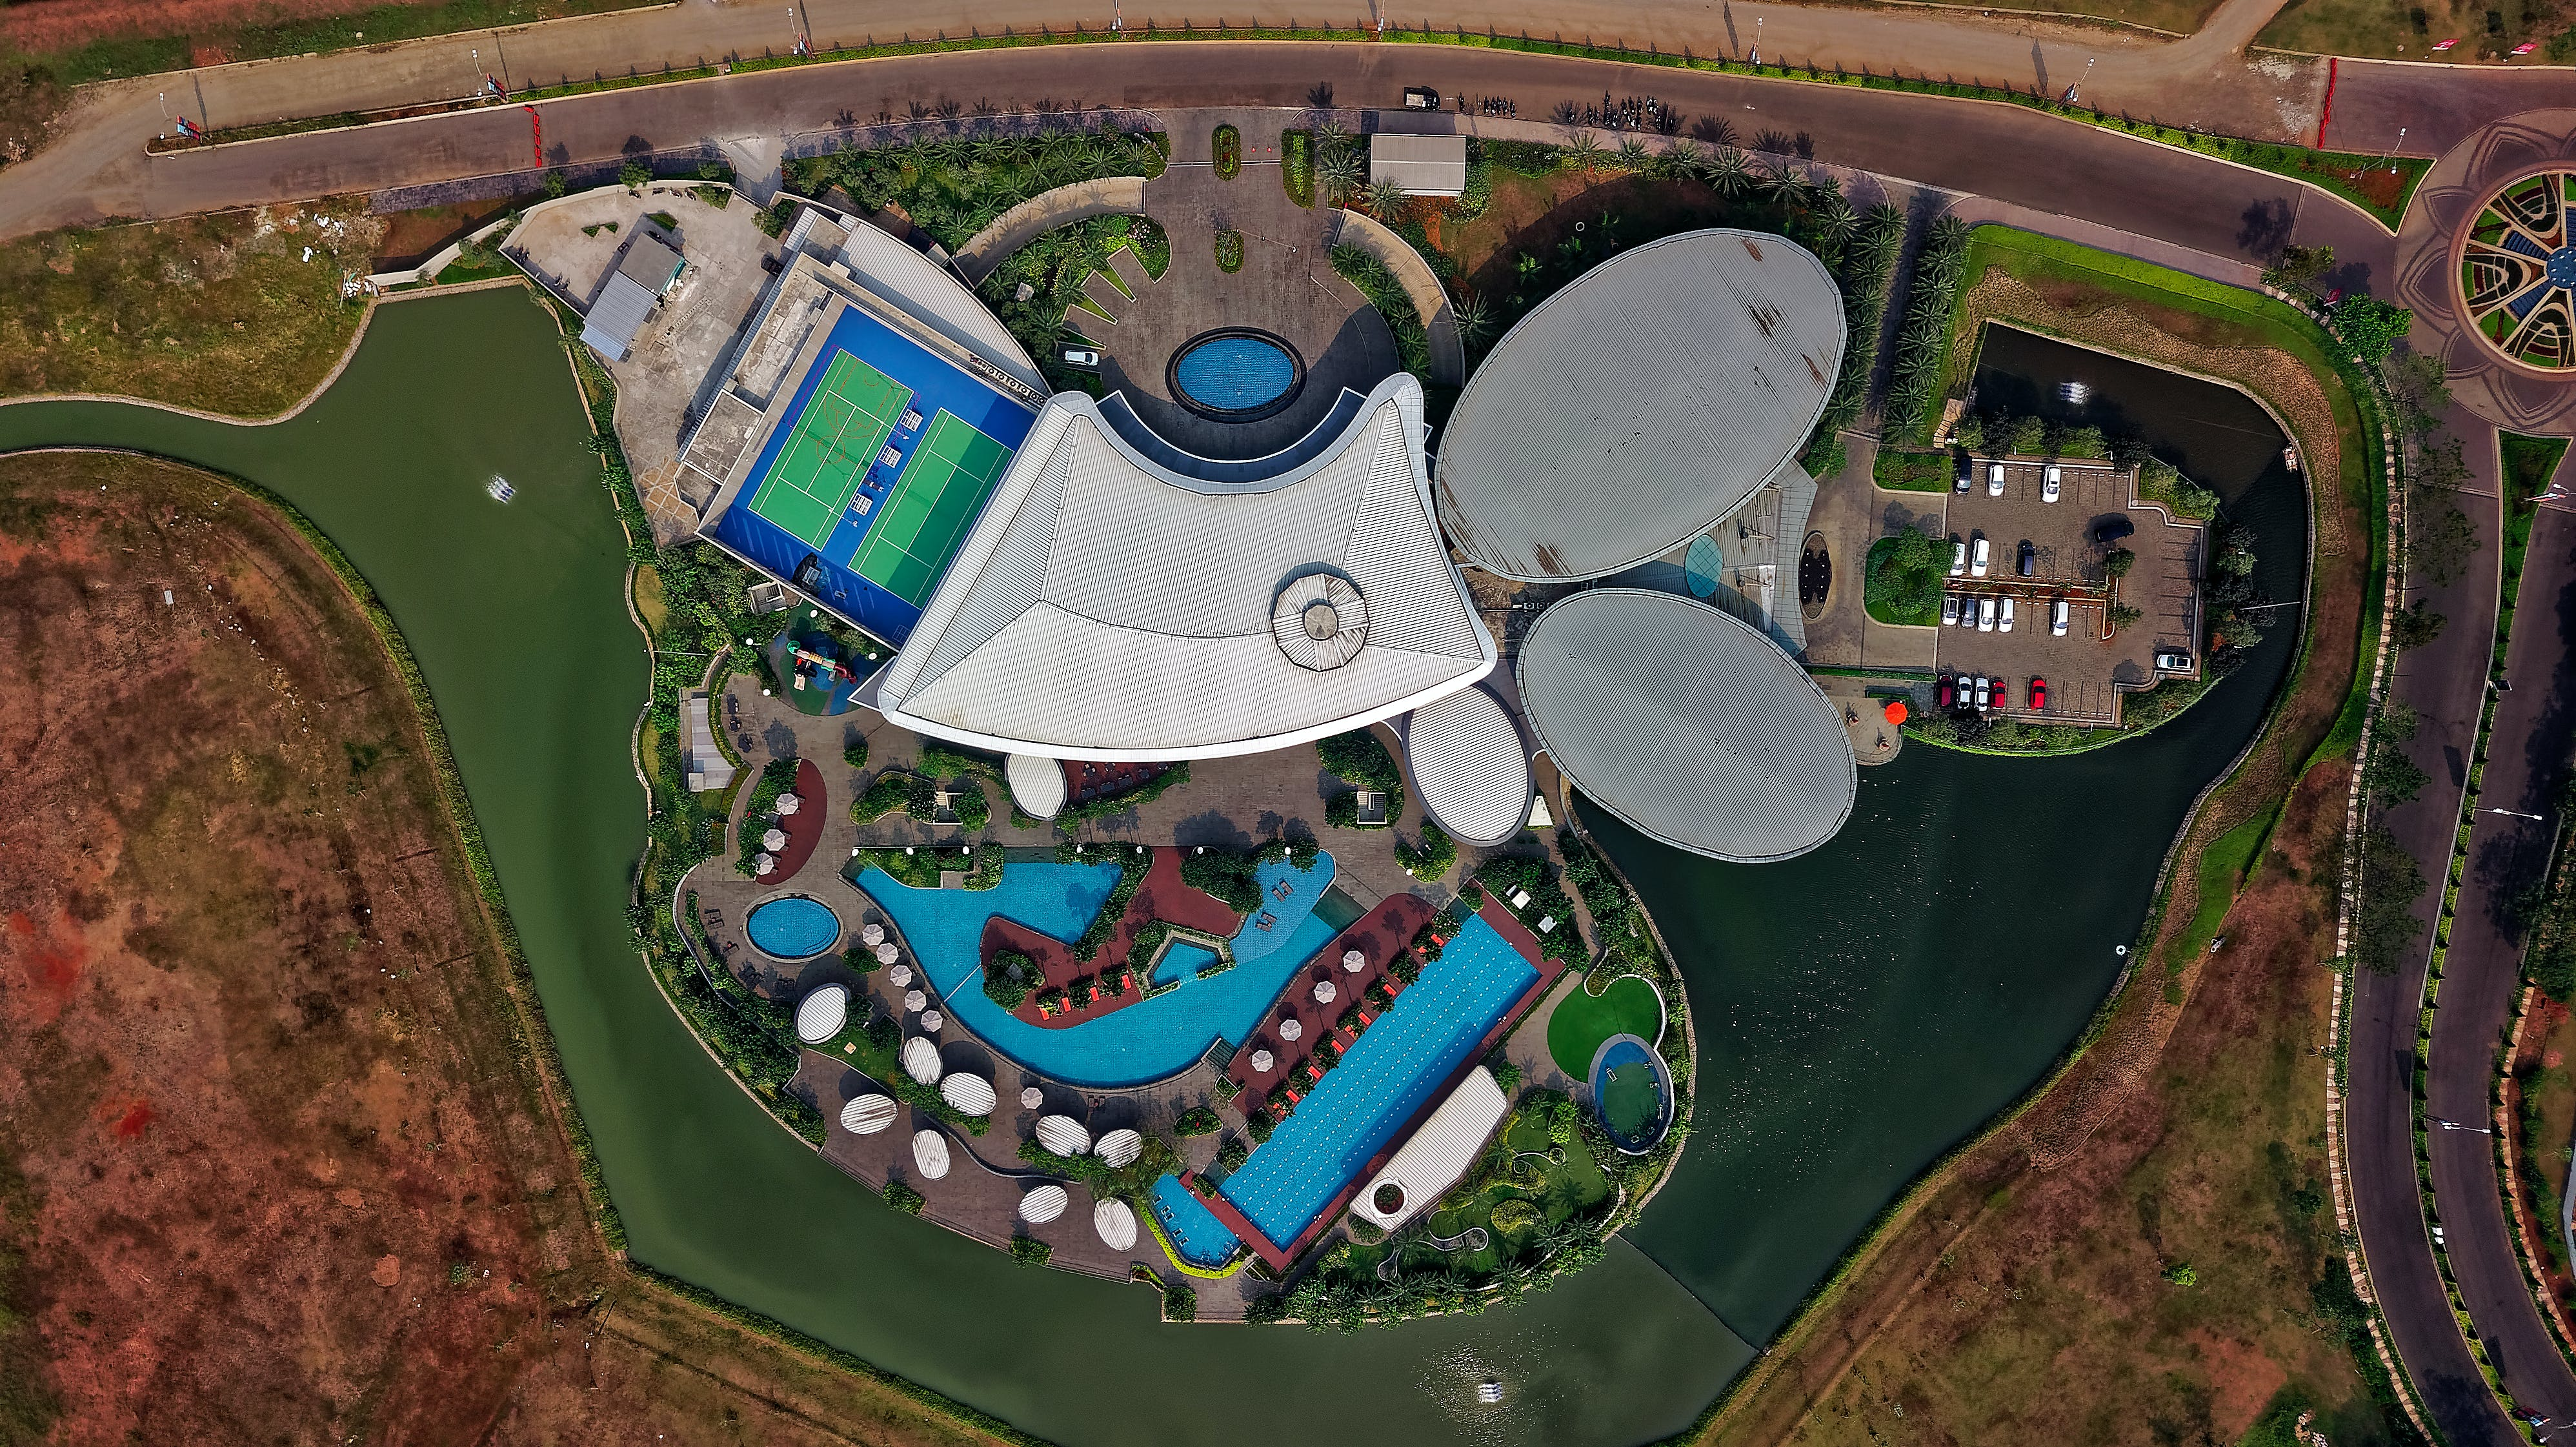 Bird's Eye View Photo of Swimming Pools and Buildings